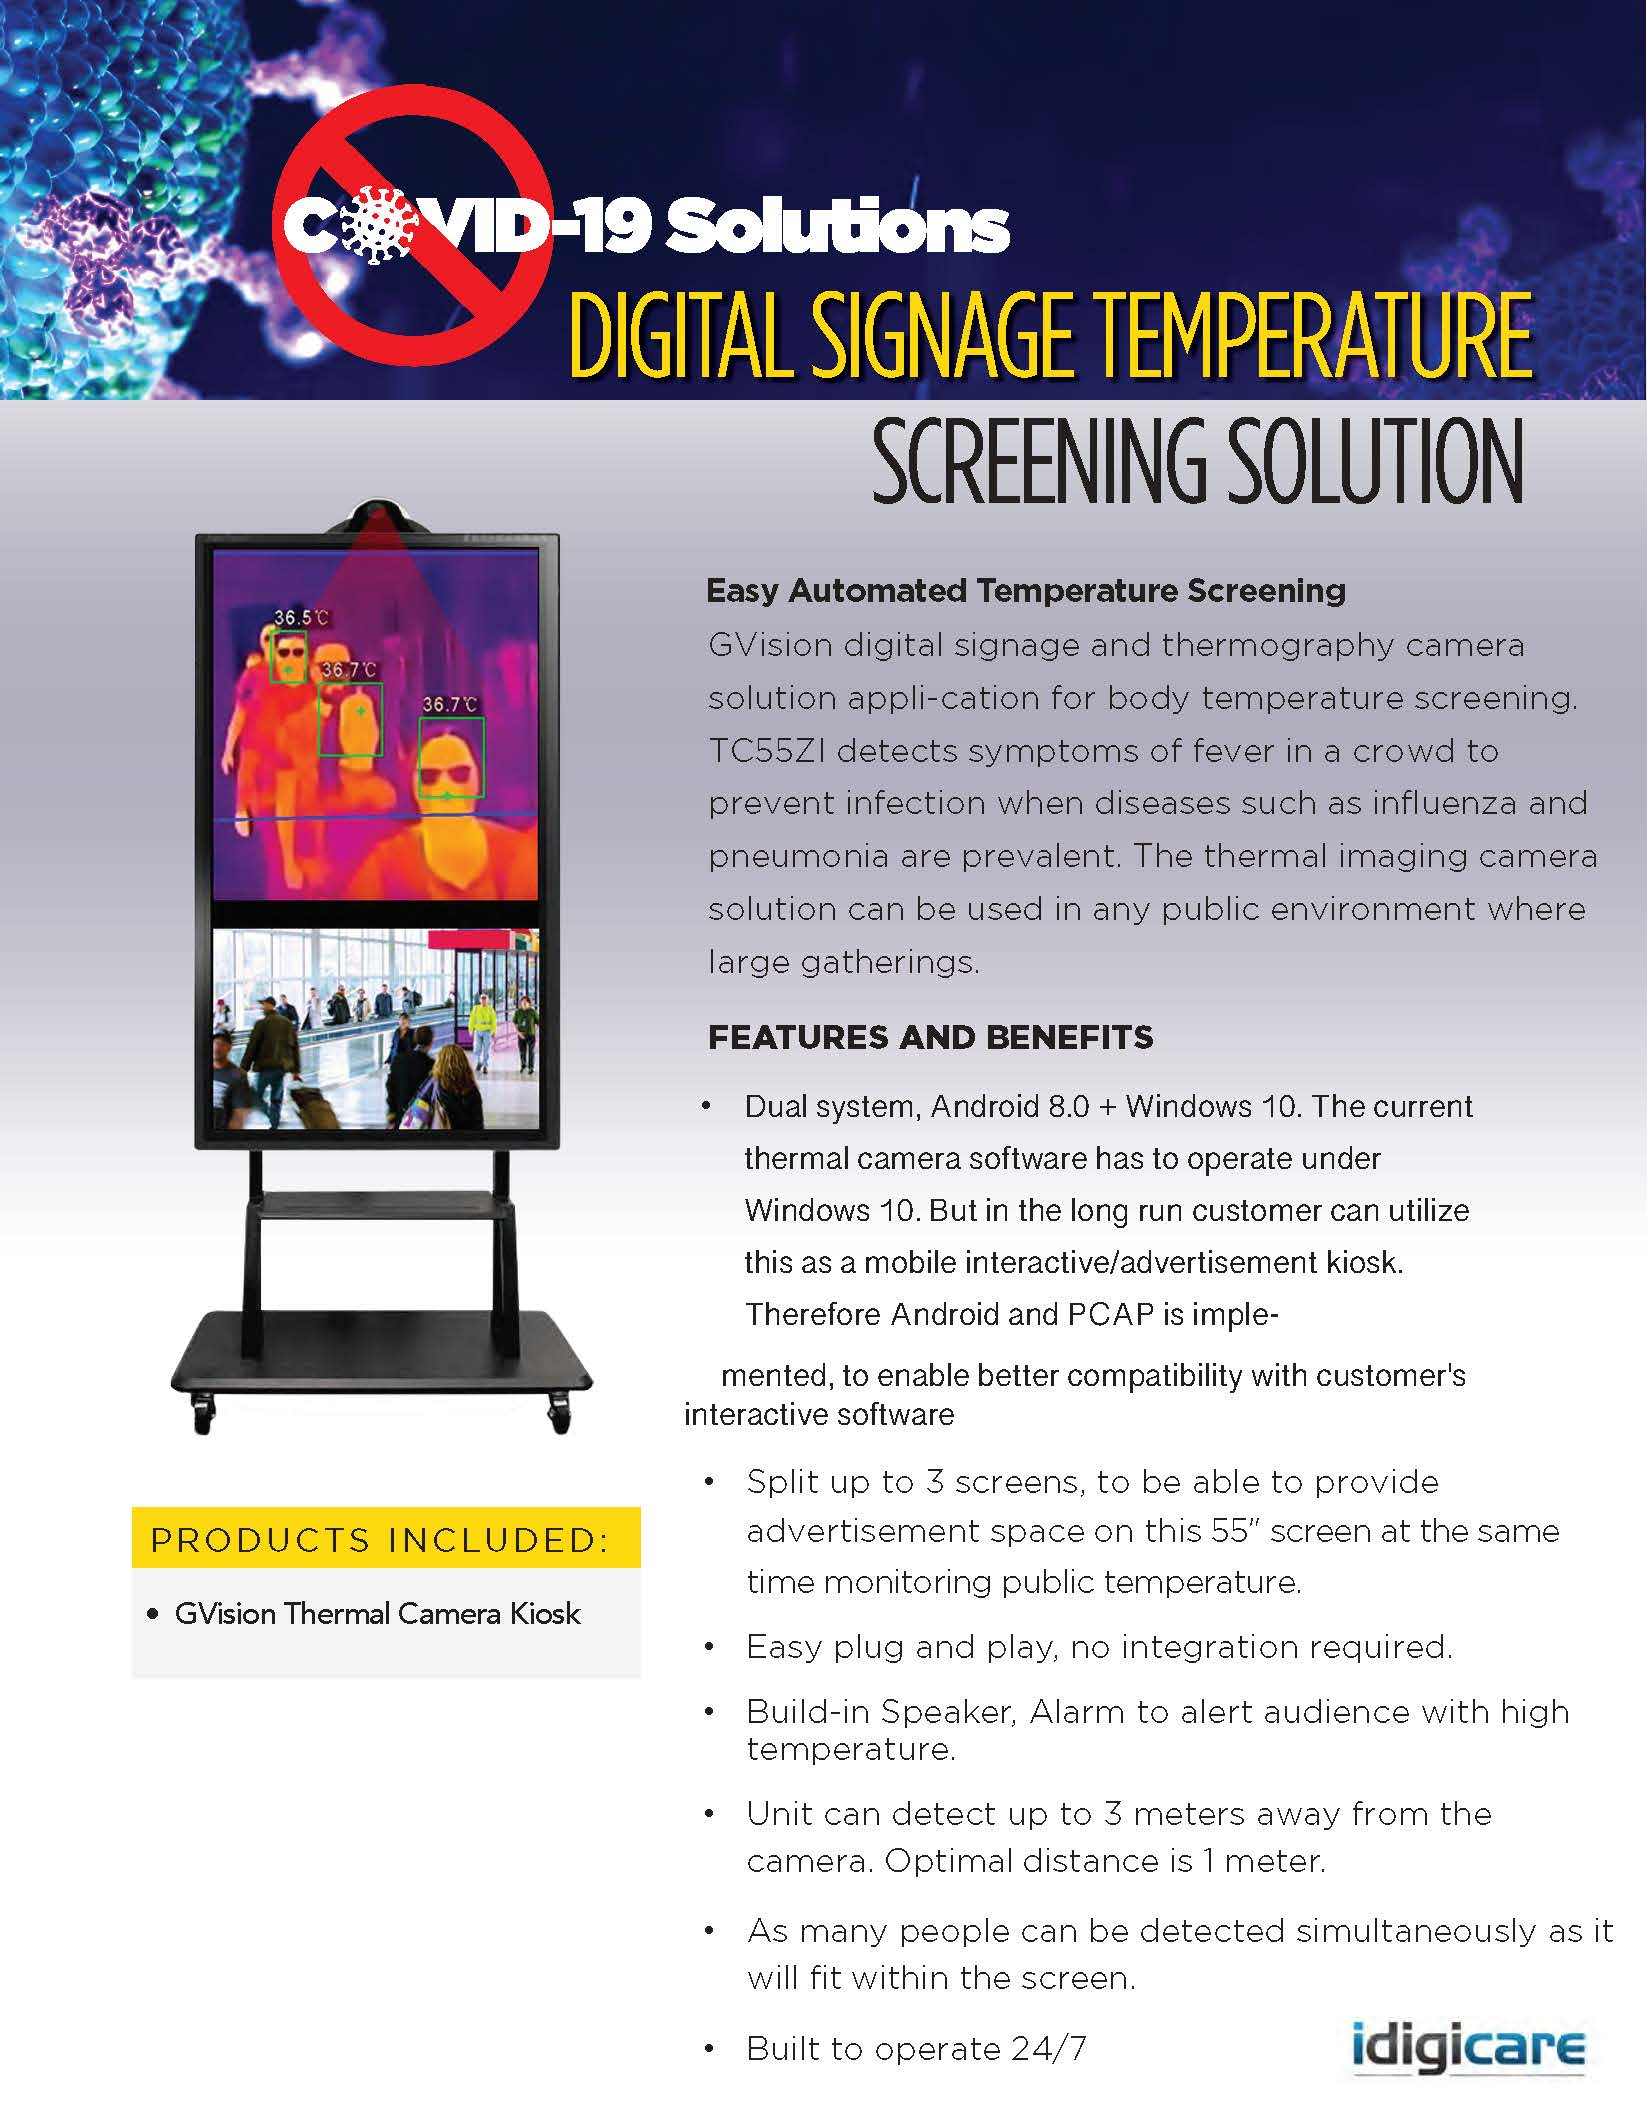 DIGITAL SIGNAGE TEMPERATURE SCREENING SOLUTION